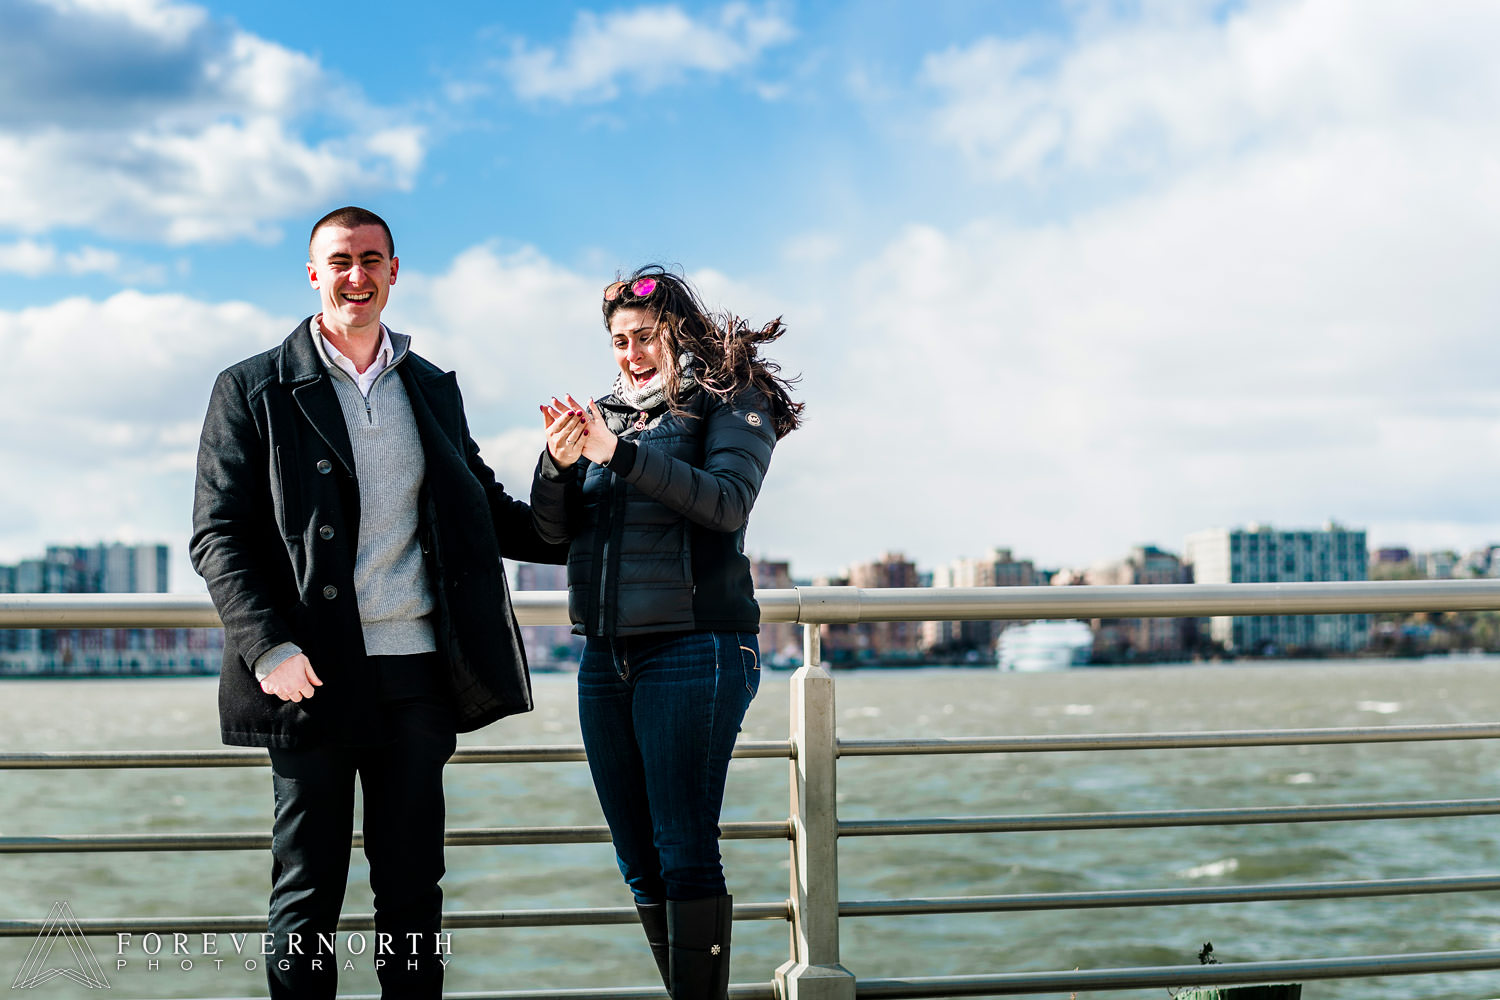 Cainero-Hudson-River-Park-Pier-62-New-York-Proposal-Engagement-Photographer-26.JPG